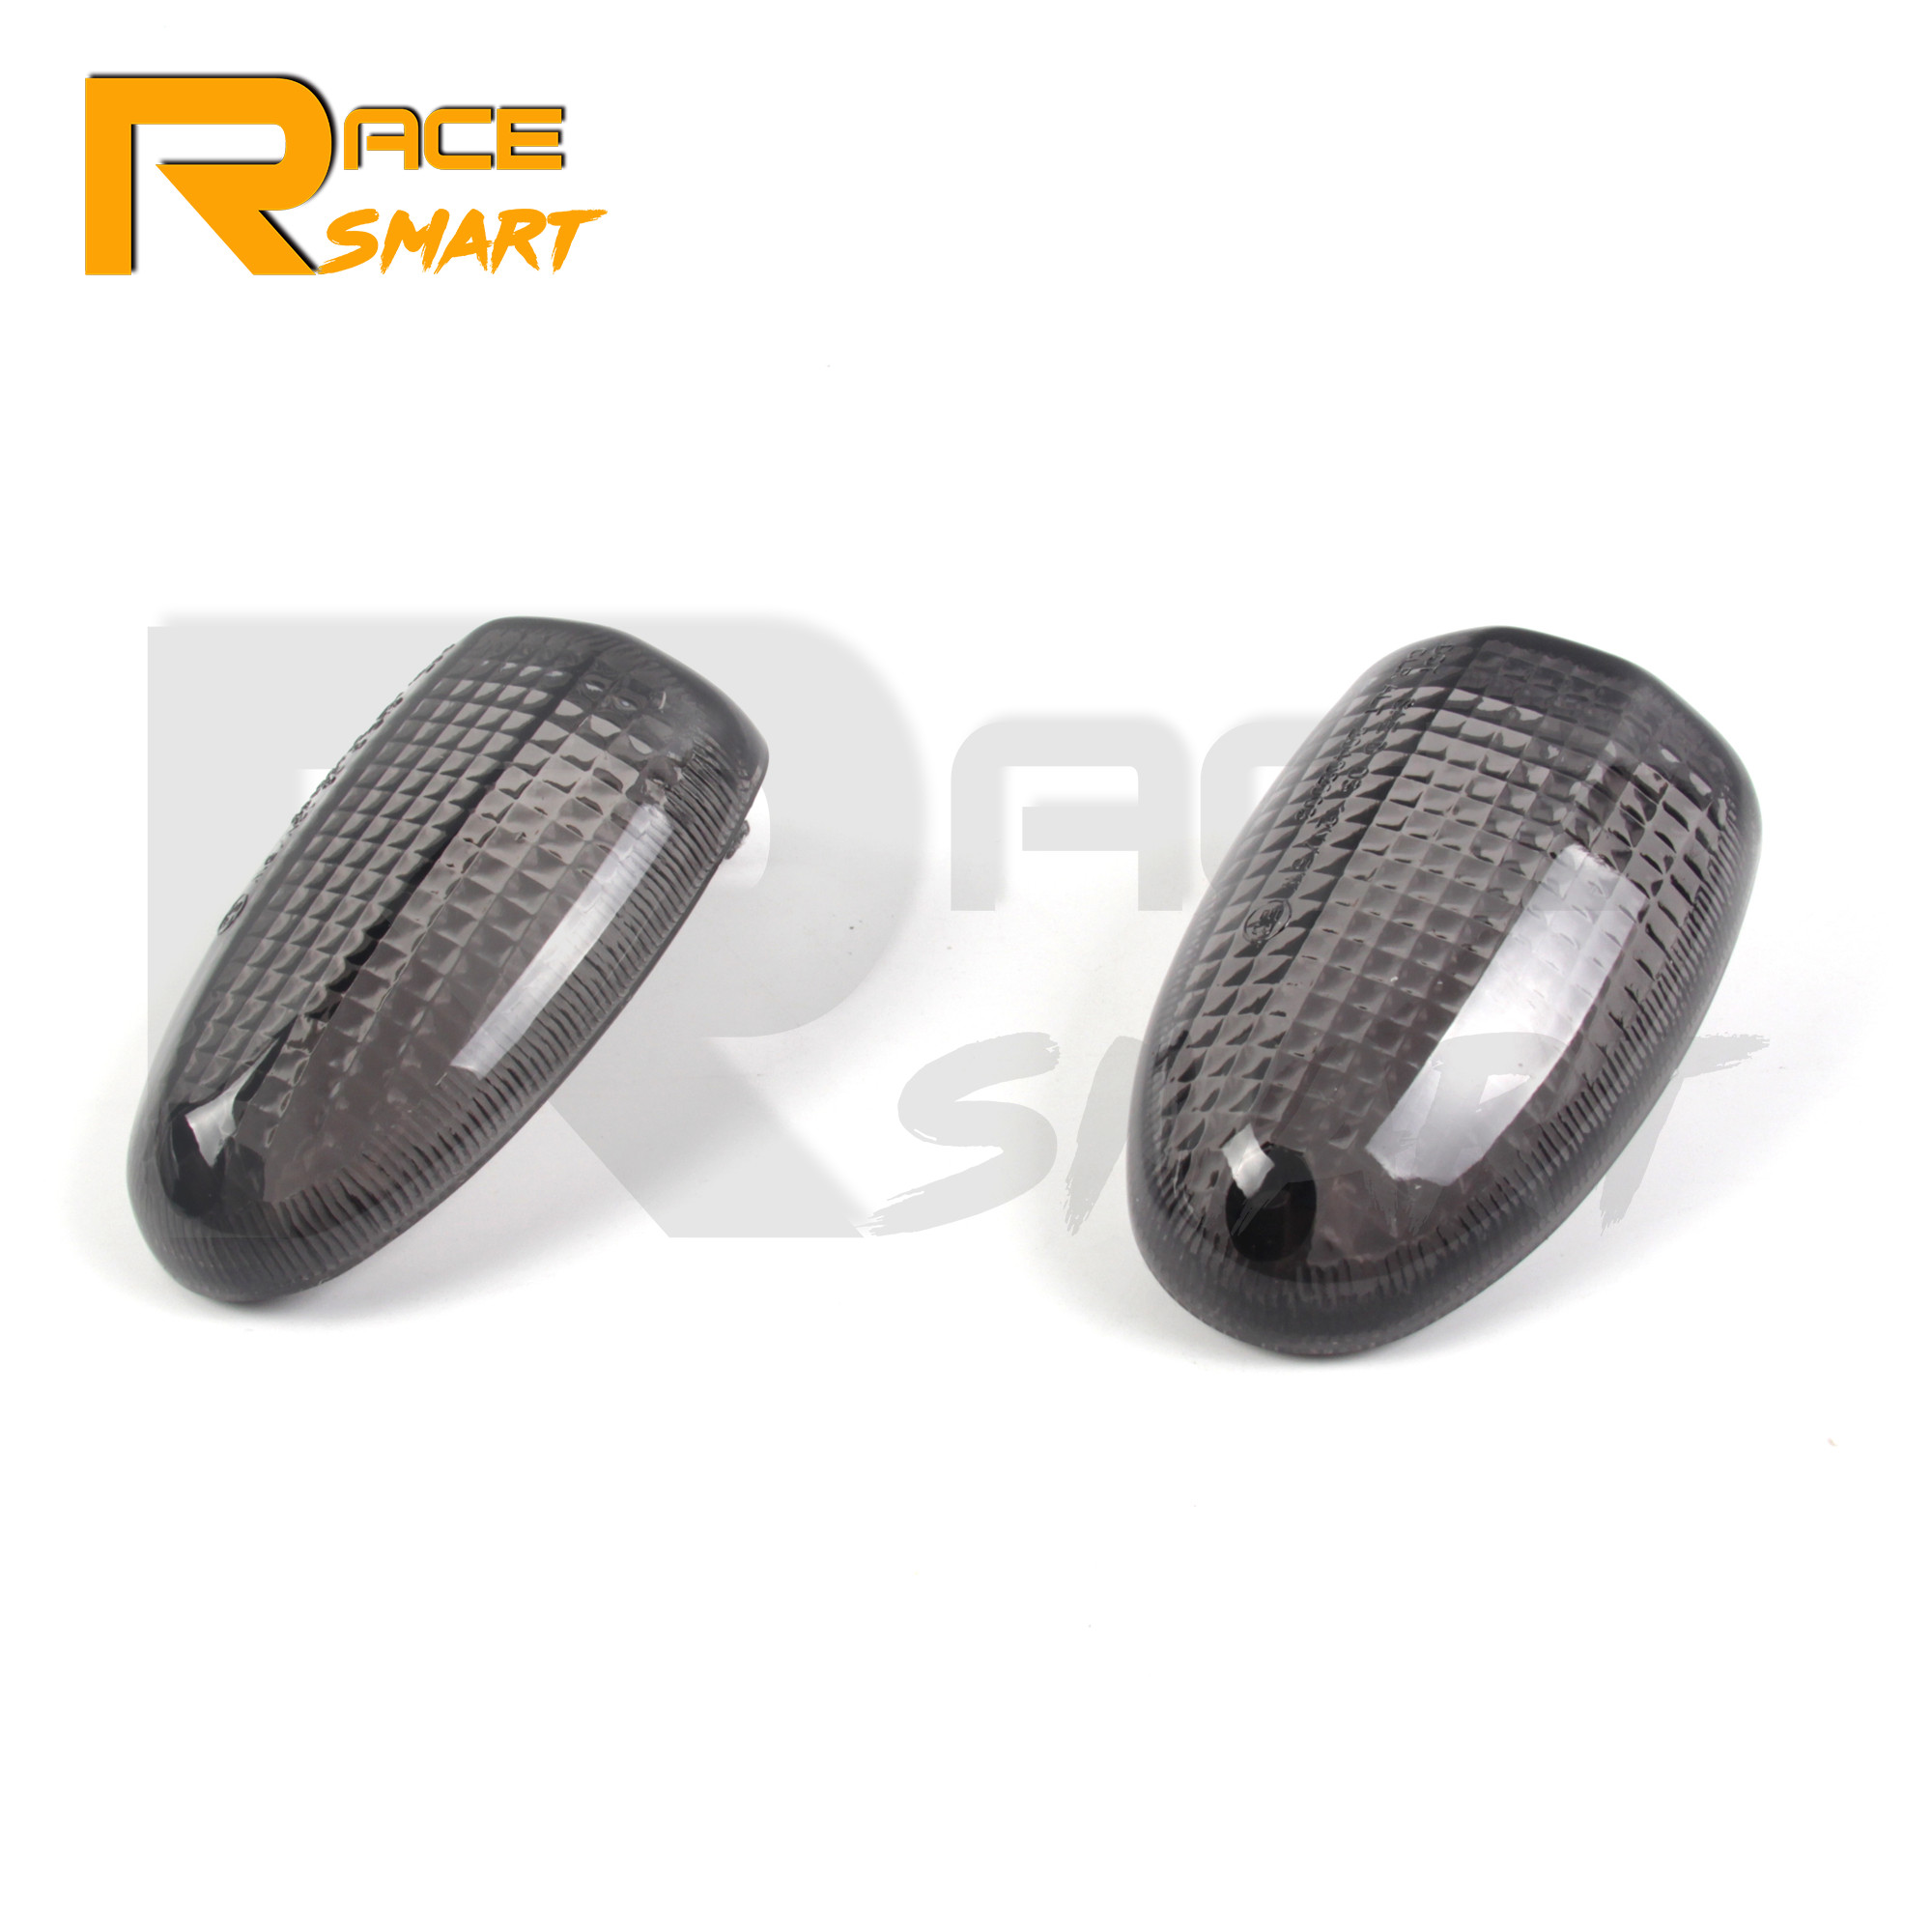 E-Mark Motorcycle Front Turn Signal Light Lens Lamp Cover Case For BMW R1100R R850R R1150GS R1150R R 1150R <font><b>1150GS</b></font> 850R 1100R New image